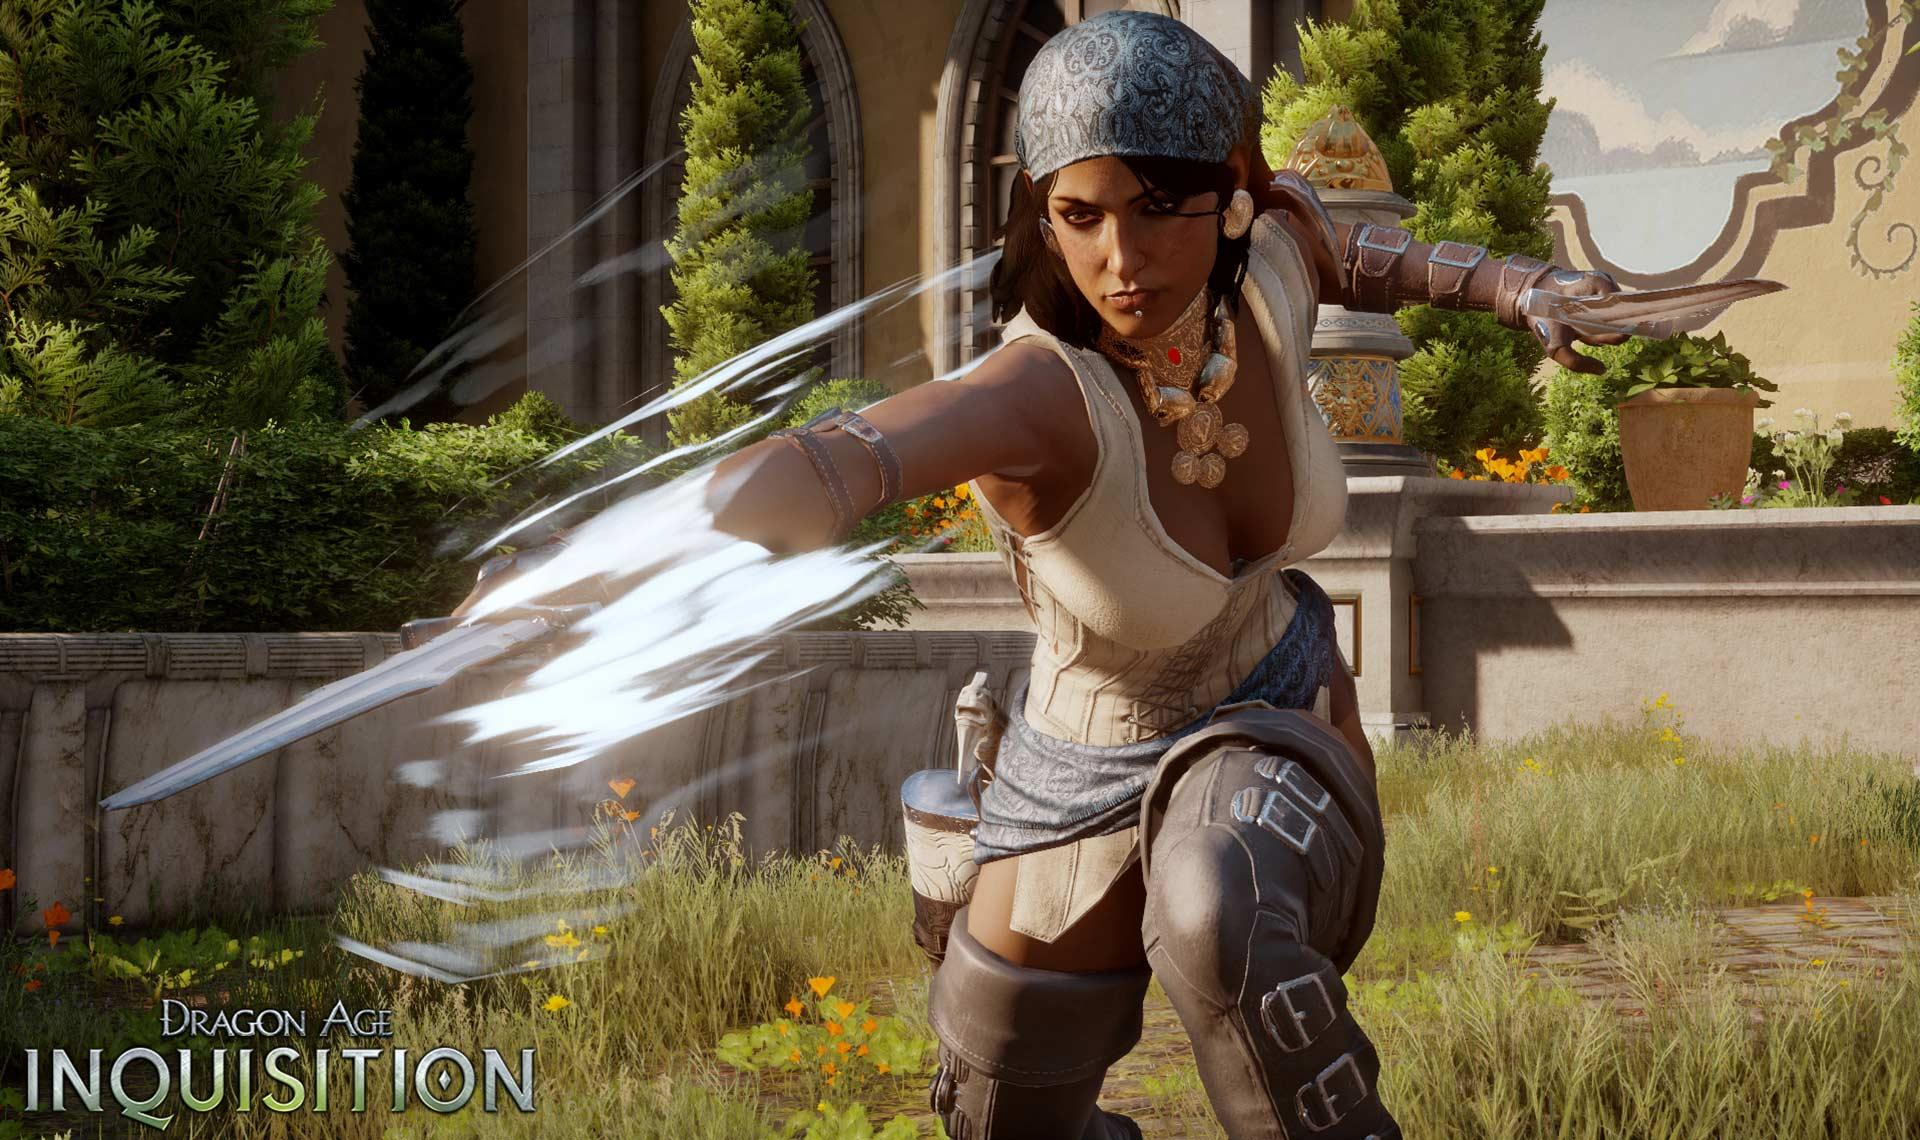 Dragon Age: Inquisition Gets Free DLC and New Patch